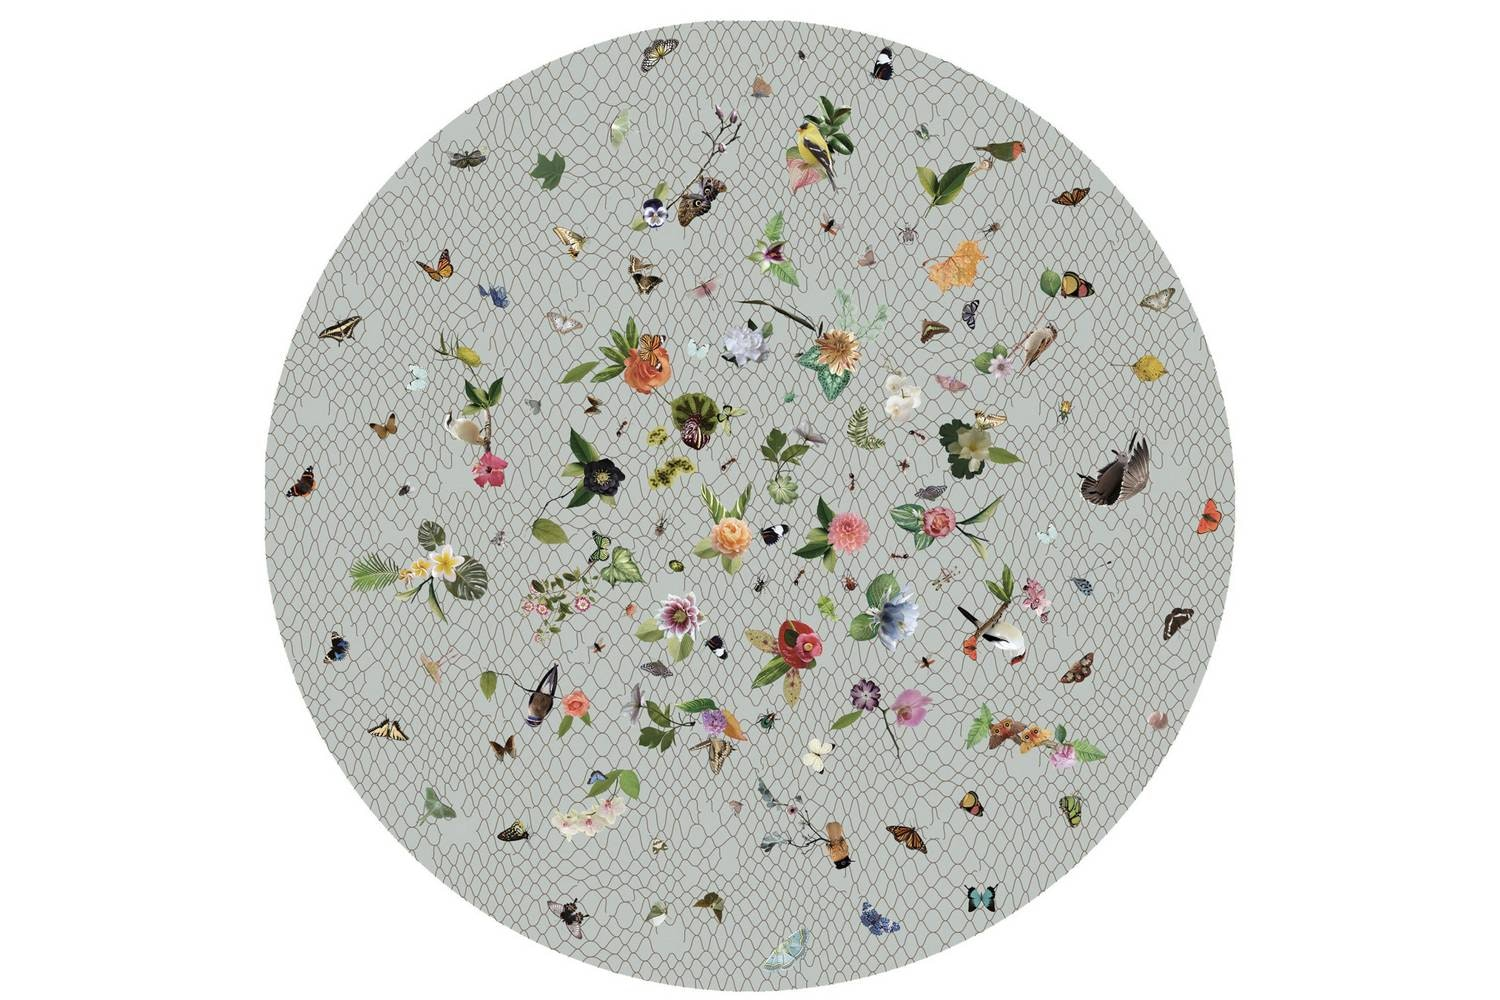 Garden of Eden Round Light Grey Rug by Edward van Vliet for Moooi Carpets